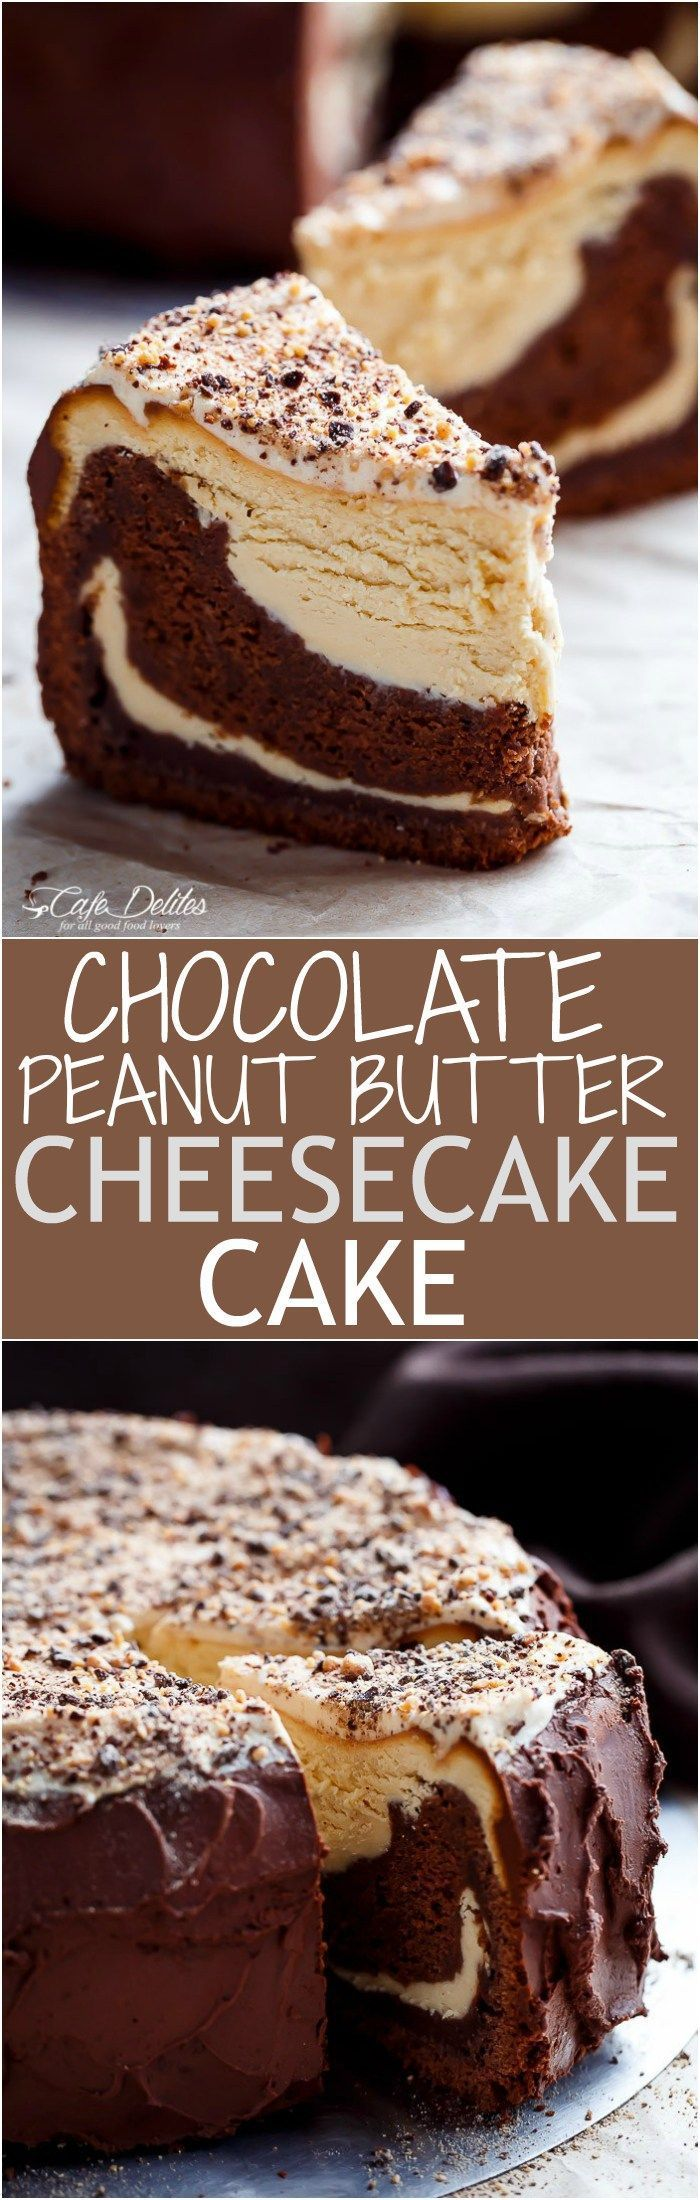 Chocolate Peanut Butter Cheesecake Cake made in the ONE pan! Creamy peanut butter cheesecake bakes on top of a fudgy chocolate cake for the ultimate dessert!   http://cafedelites.com Pinterest   https://pinterest.com/elcocinillas/